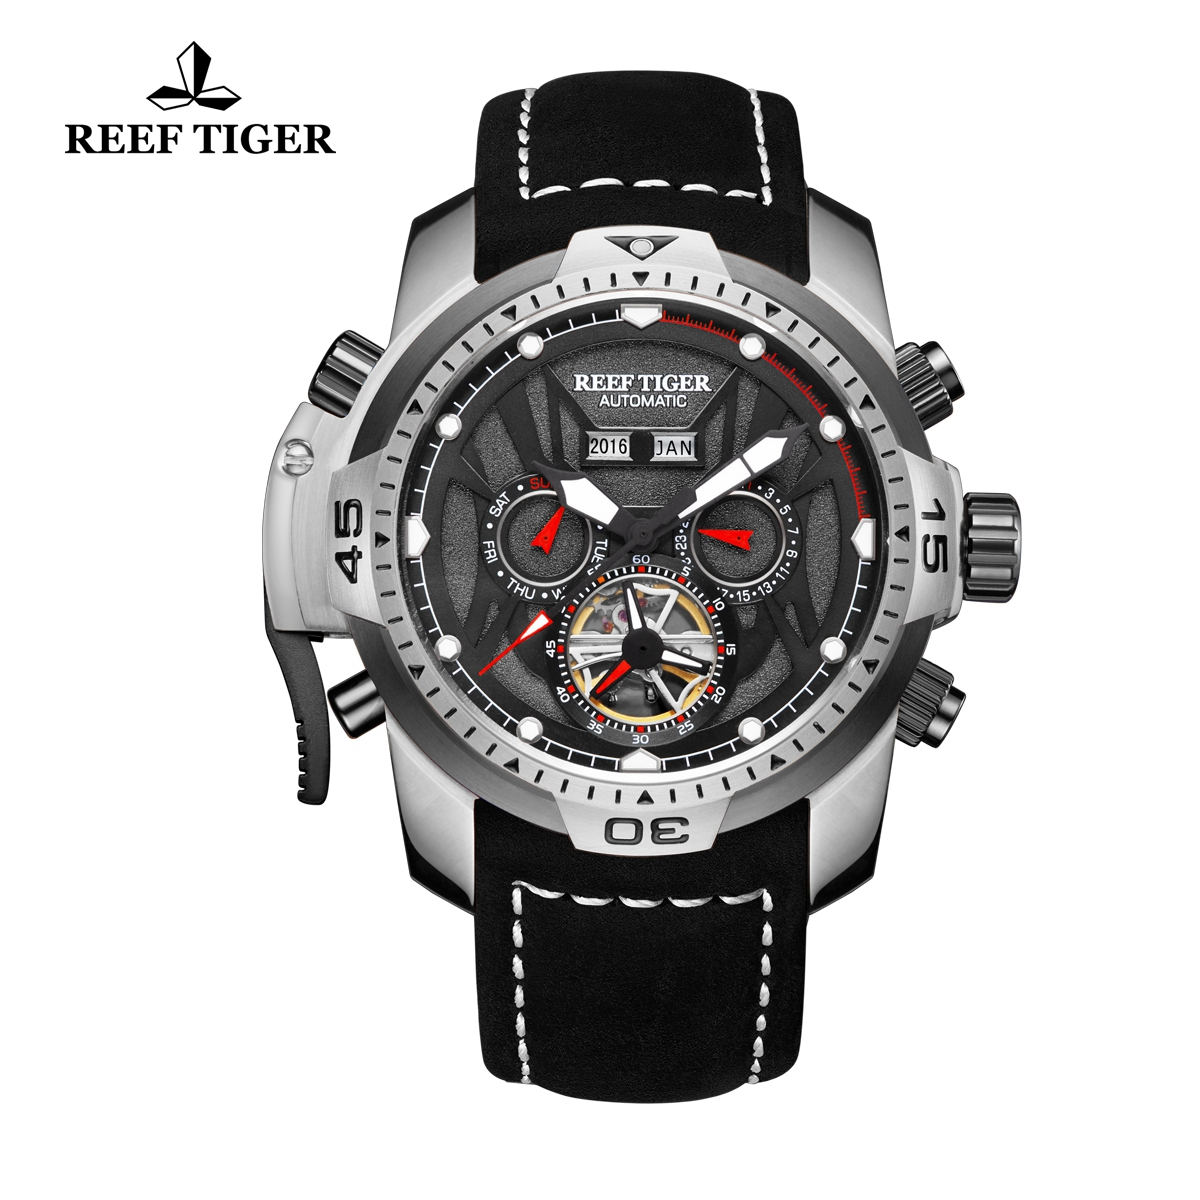 Reef Tiger Transformer Sport Watches Complicated Watch Black Leather Strap Steel Case RGA3532-YBBLR